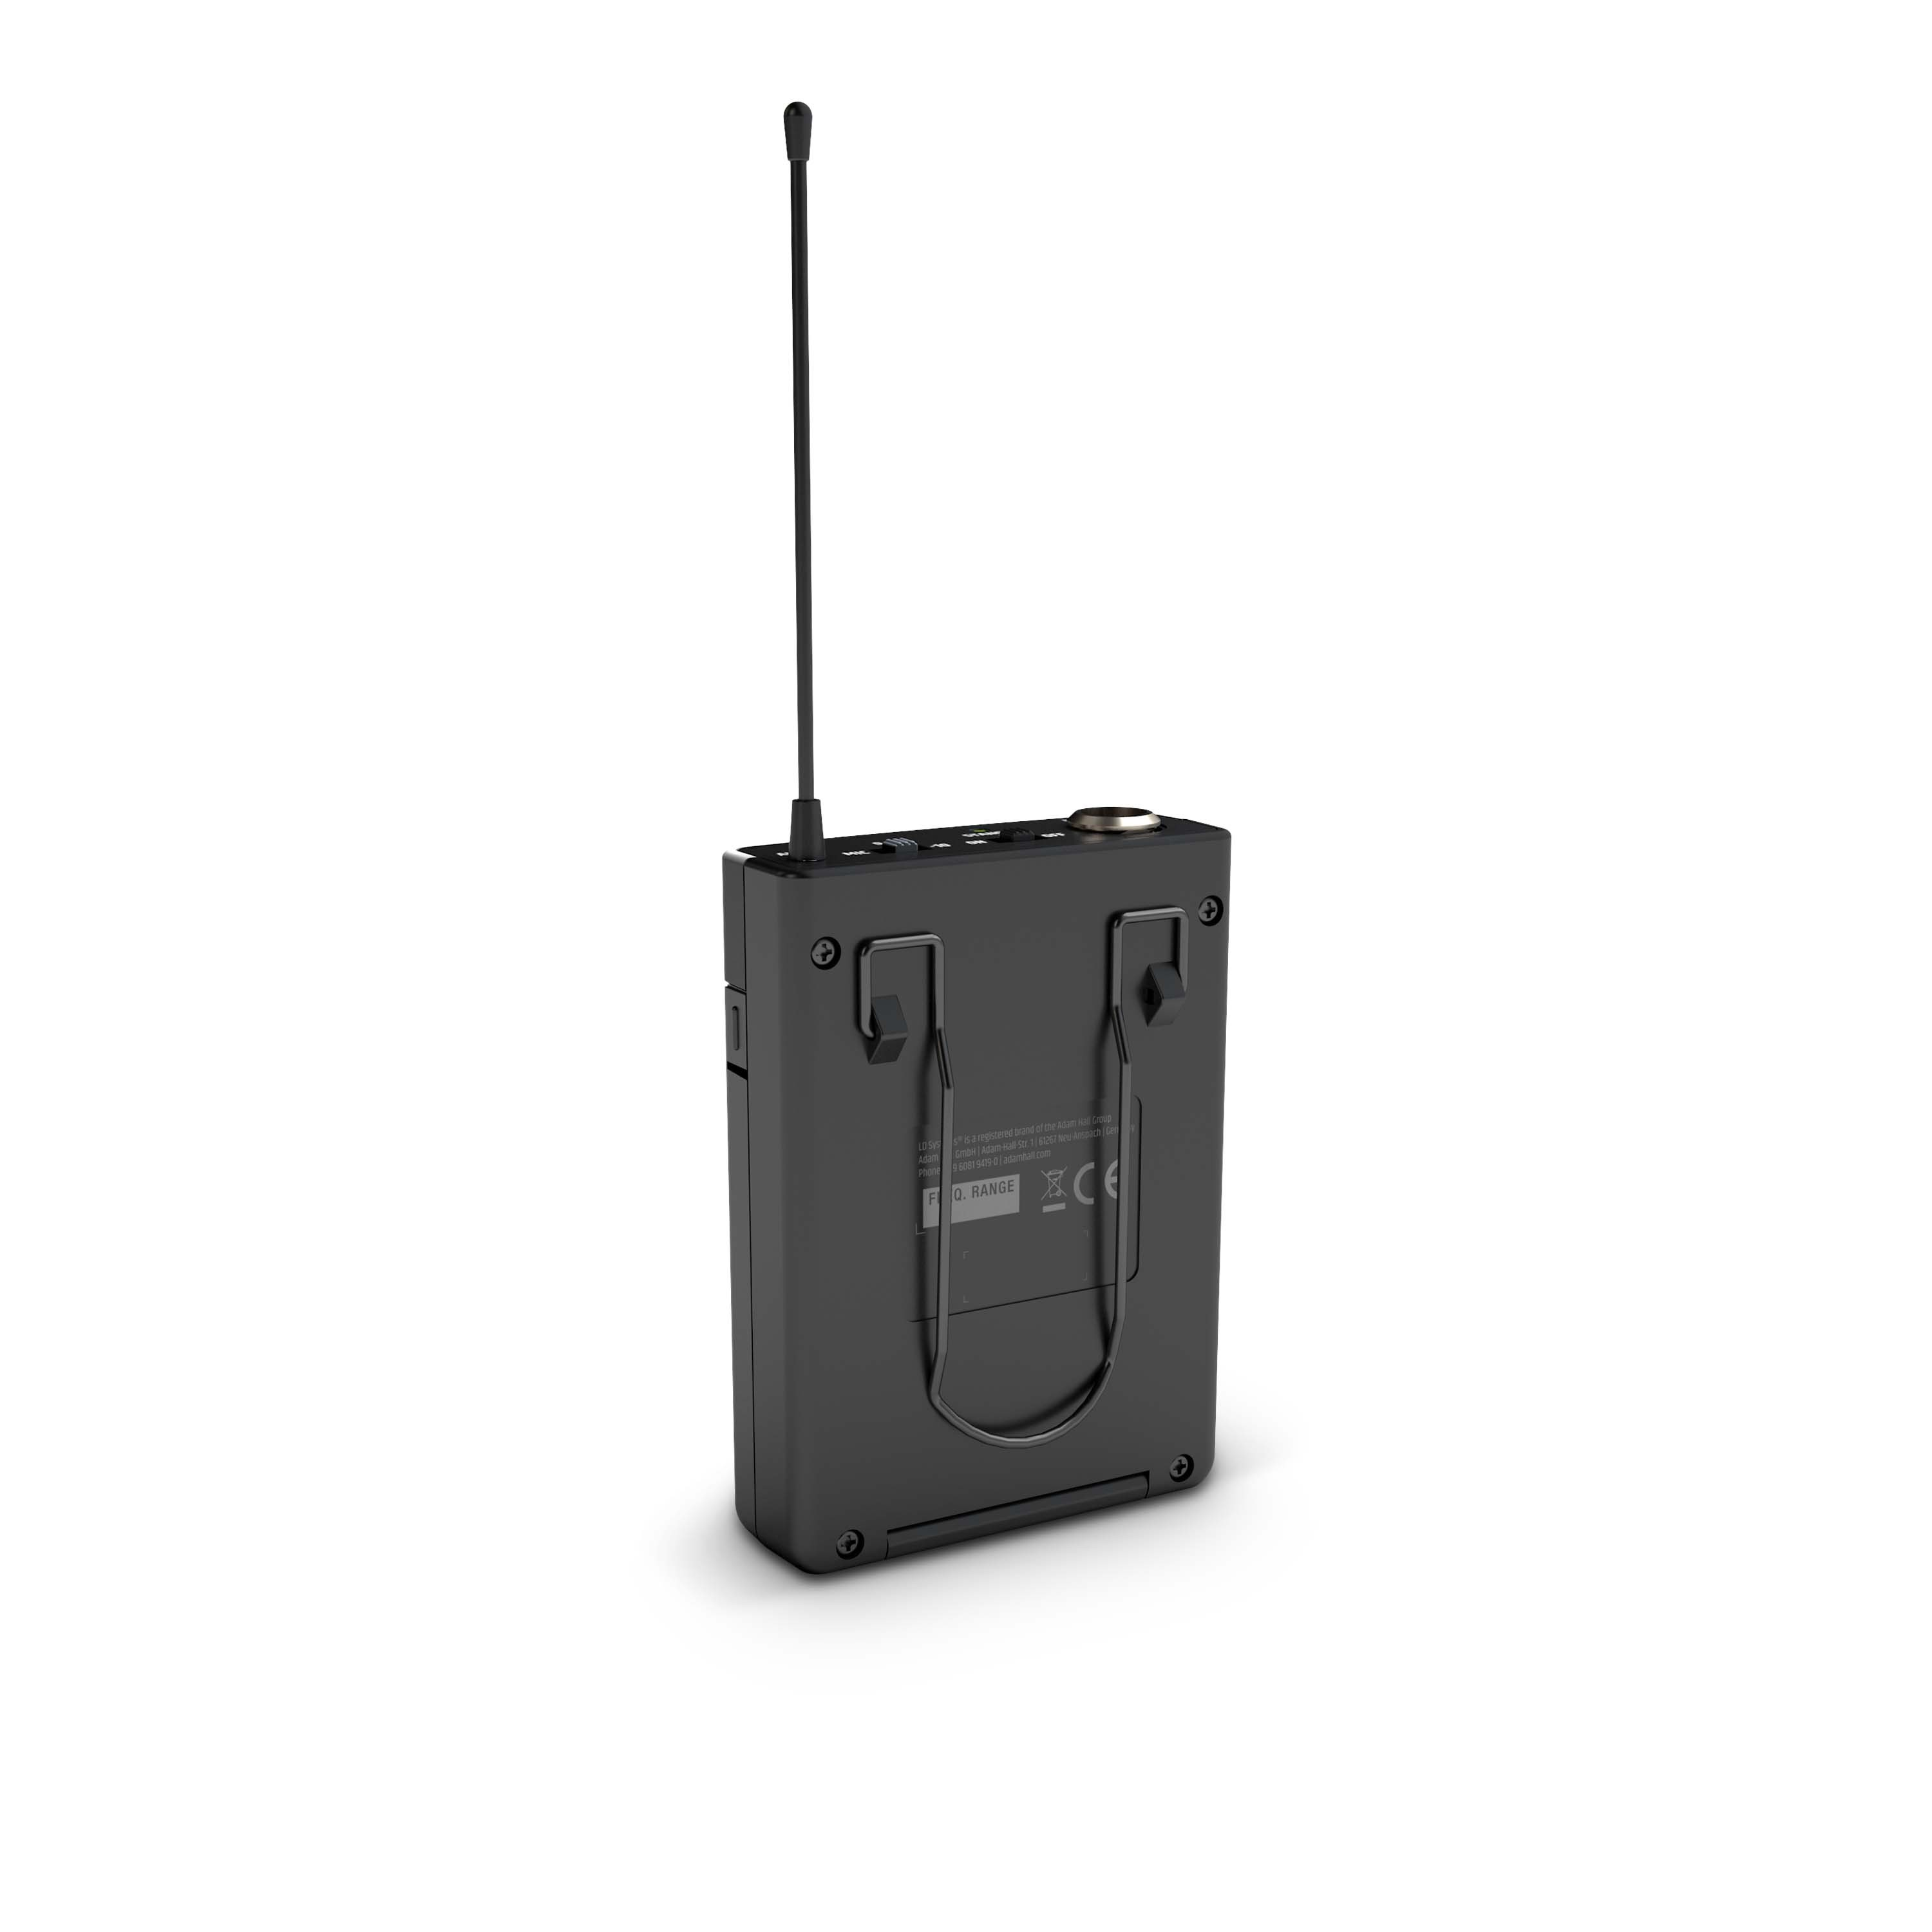 U306 BP Bodypack transmitter